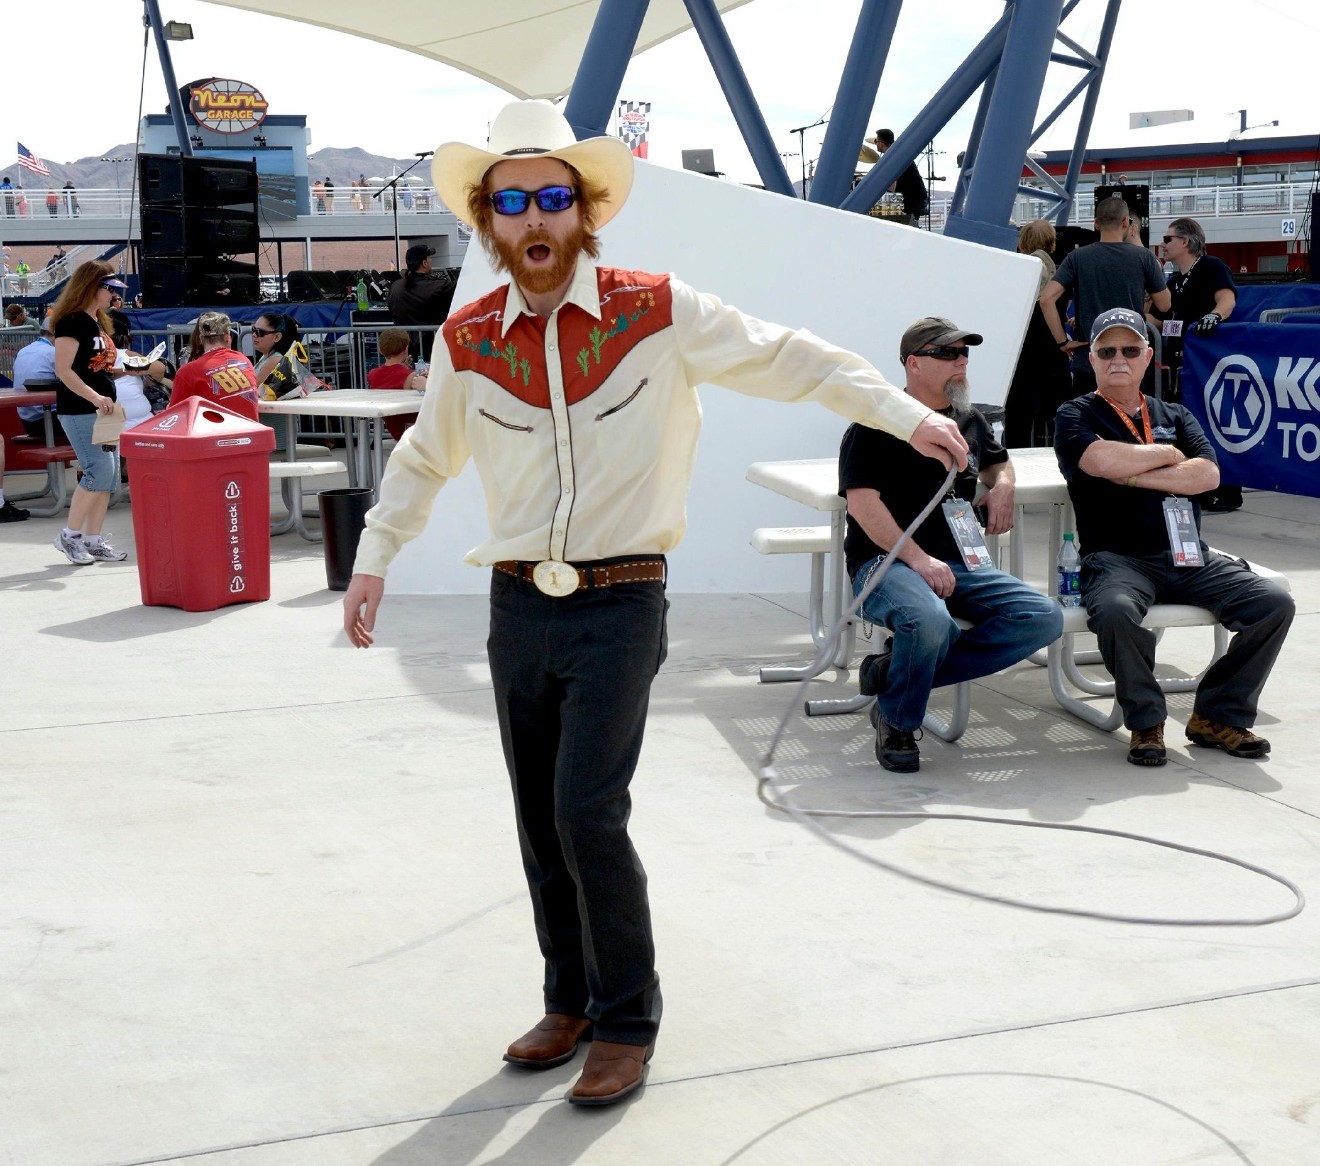 Fans are entertained with rope tricks as they enter the NEON Garage area during NASCAR Stratosphere Pole Day at Las Vegas Motor Speedway. Friday, March 10, 2017. (Glenn Pinkerton/Las Vegas News Bureau)